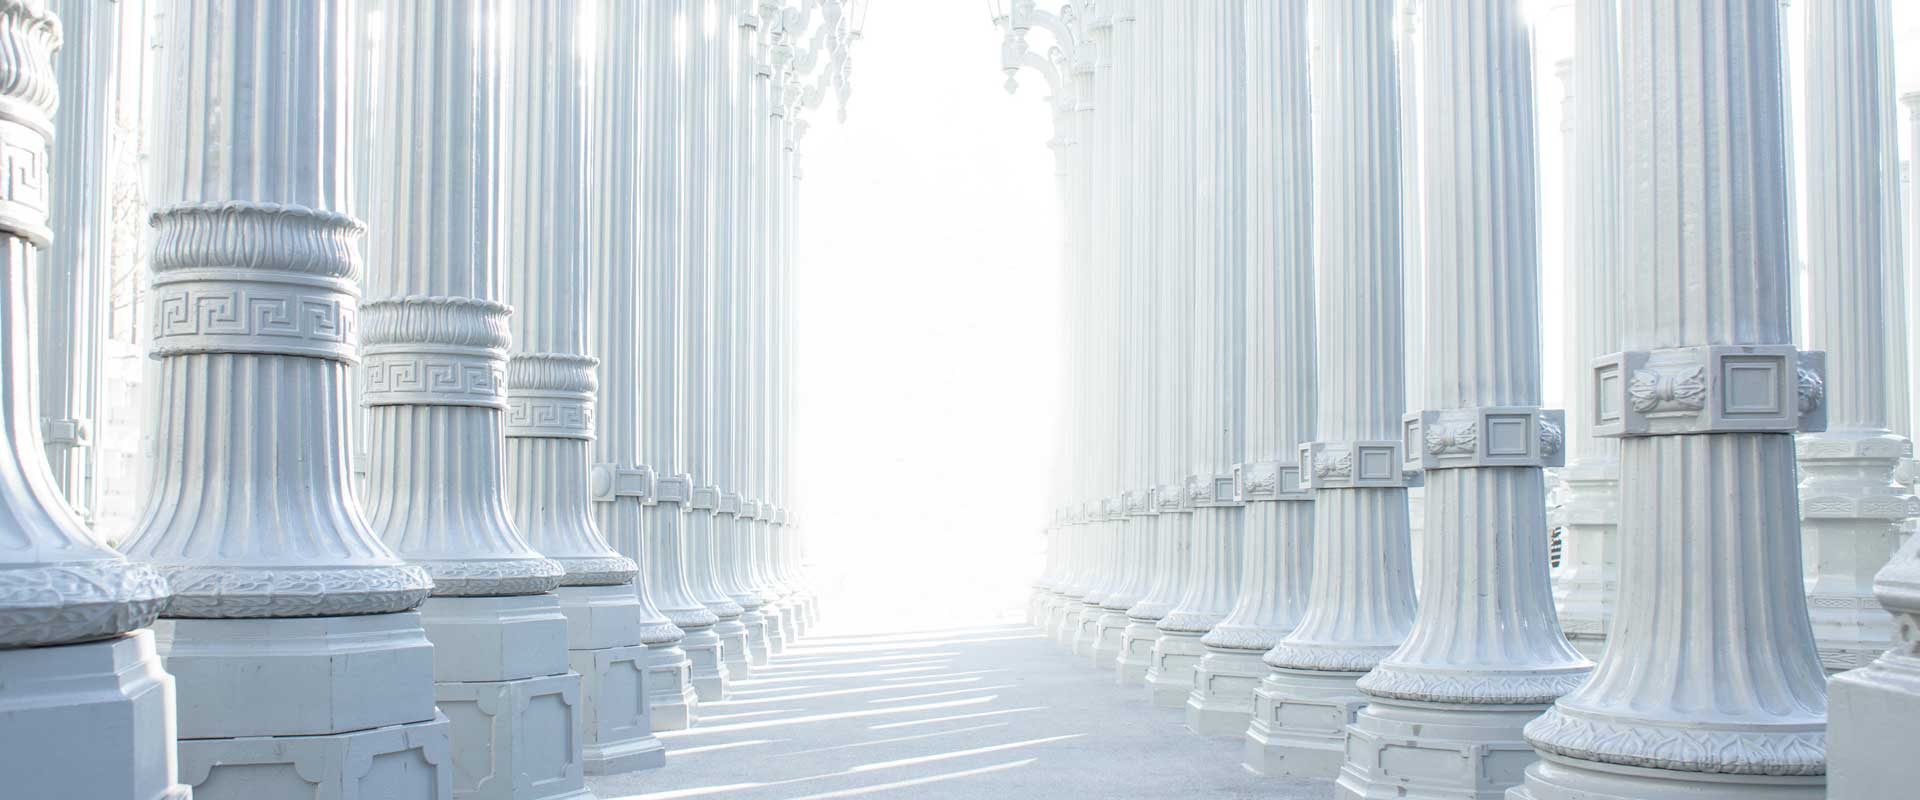 many rows of white pillars with bright white light in the distance